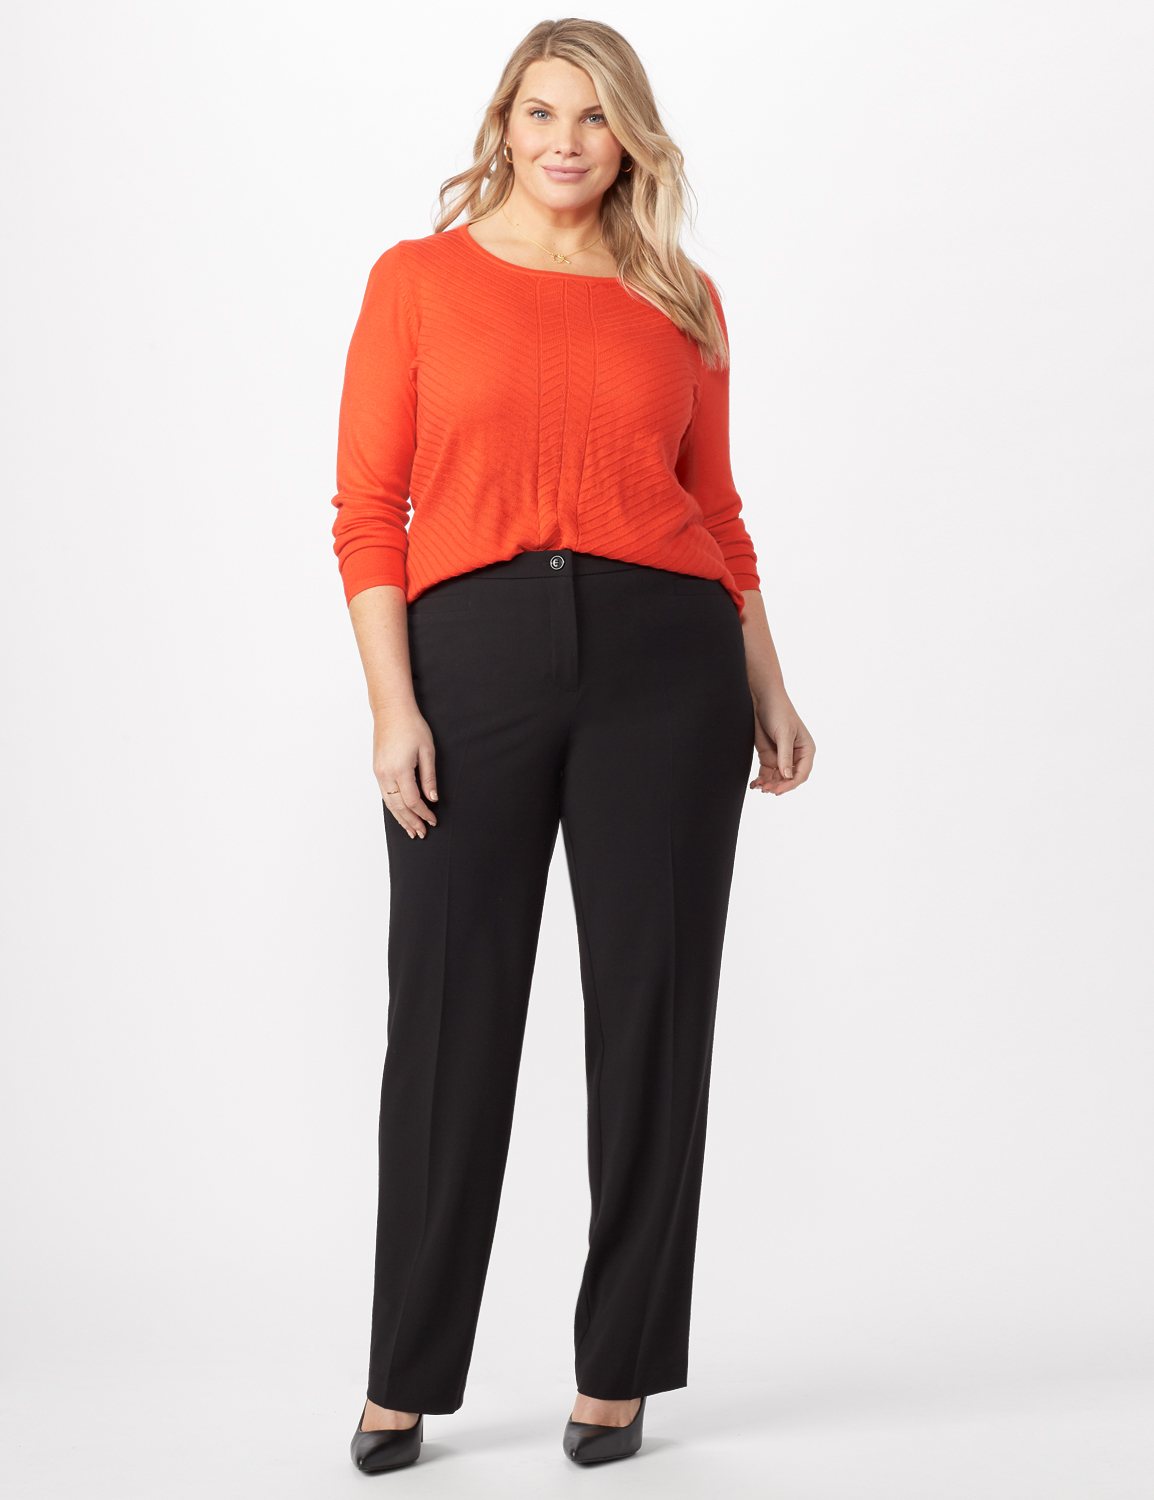 *PRE-SALE* Secret Agent Trouser with Cateye Pocket and Zipper -Black - Front